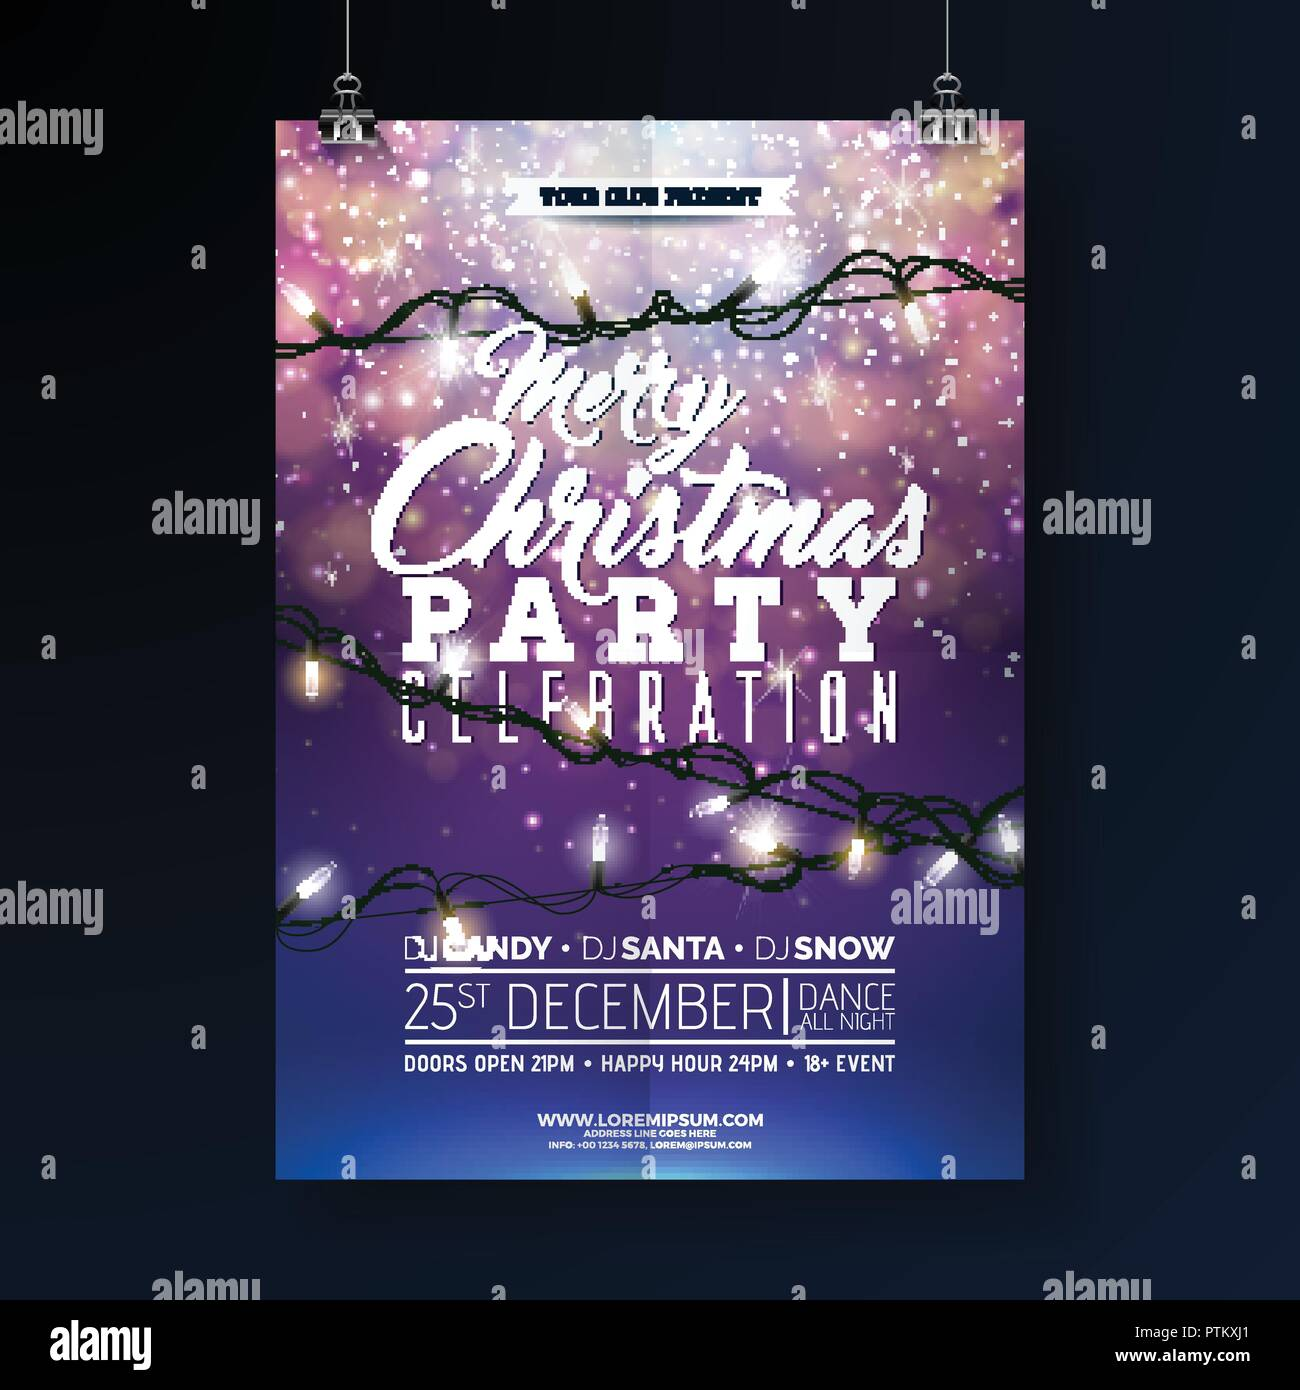 christmas party flyer illustration with lights garland and